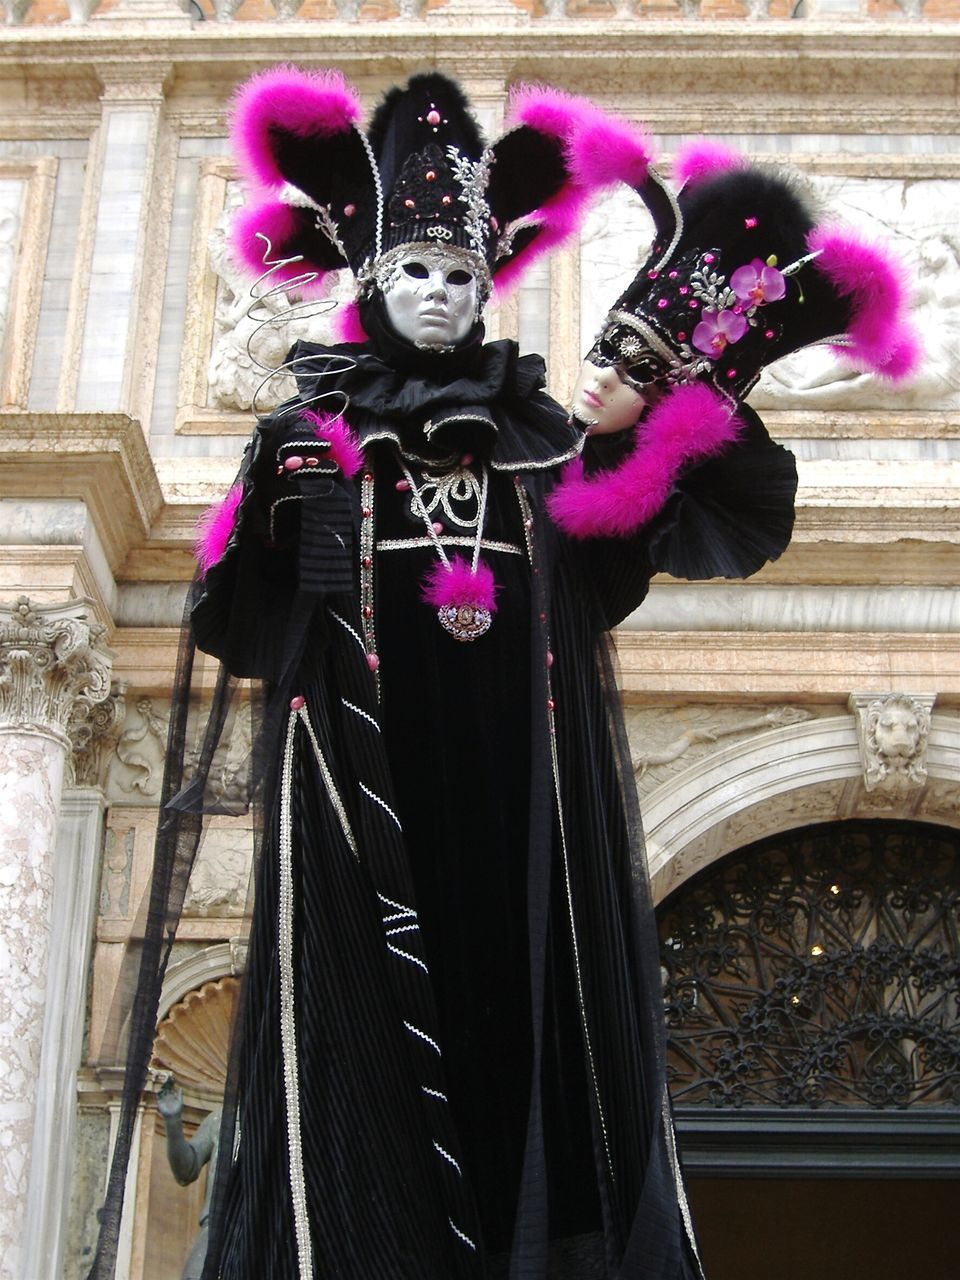 Low Angle View Of Person Wearing Venetian Mask During Carnival